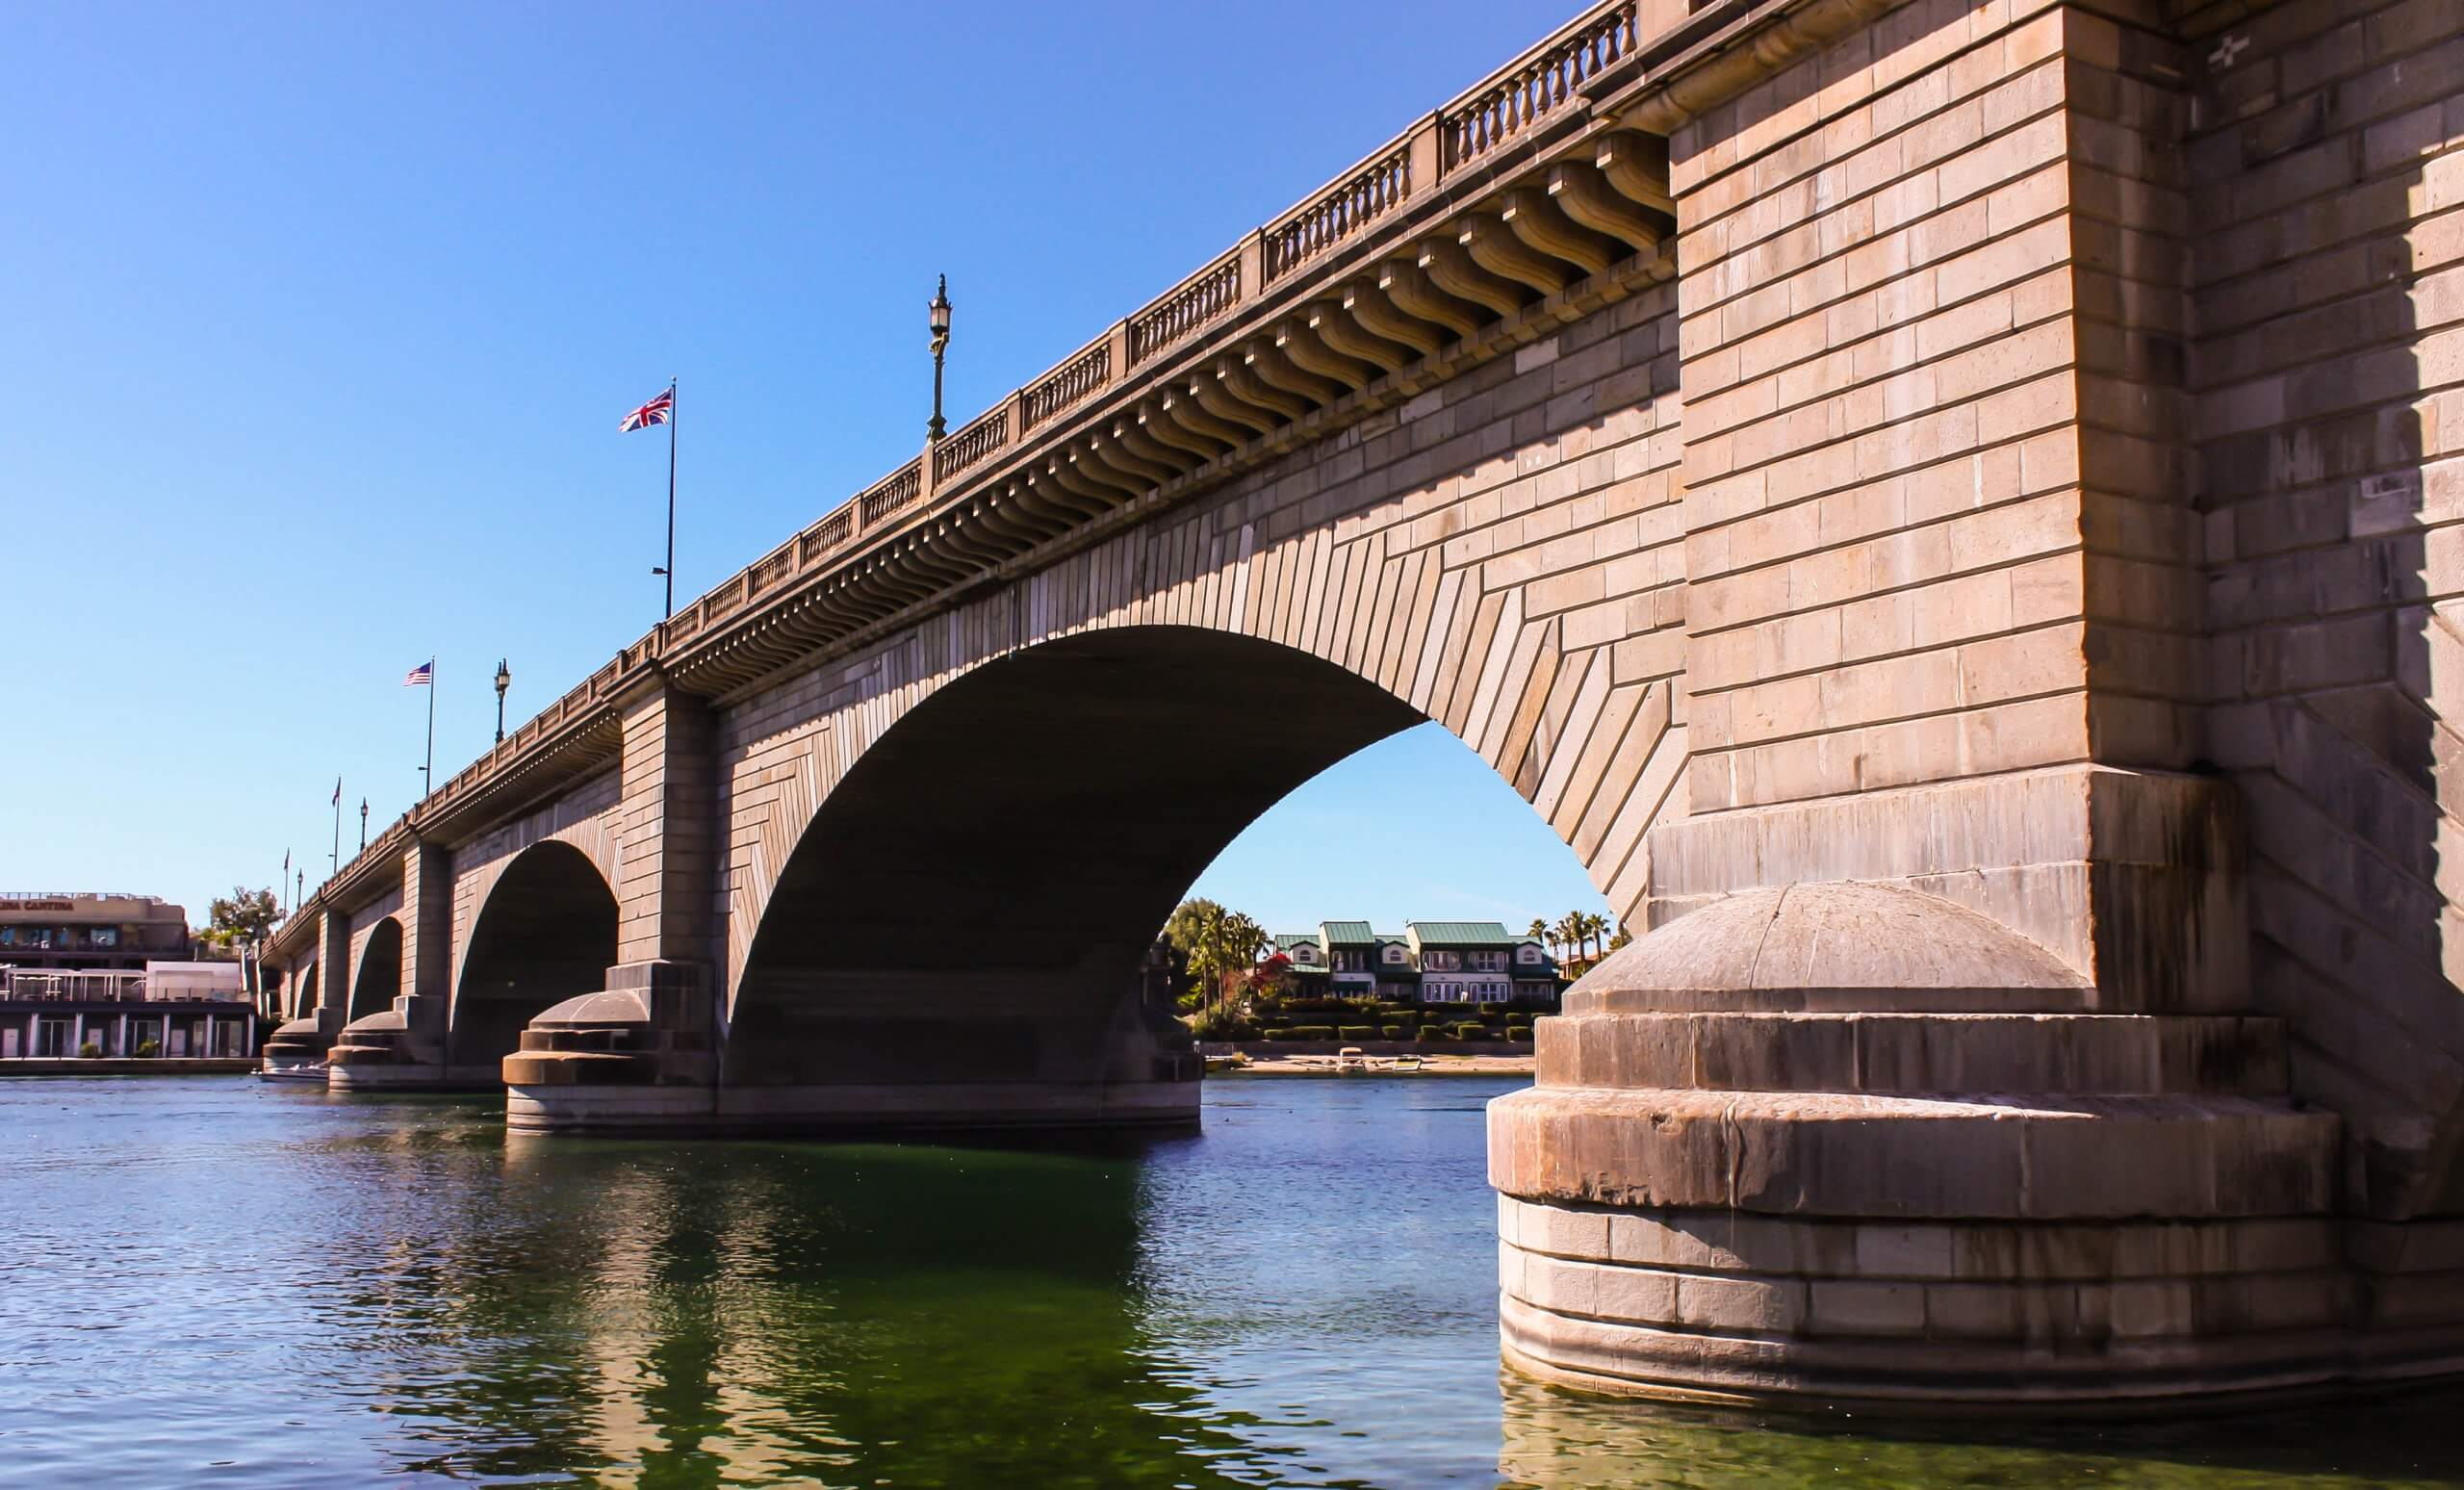 London Bridge in Lake Havasu, Arizona.